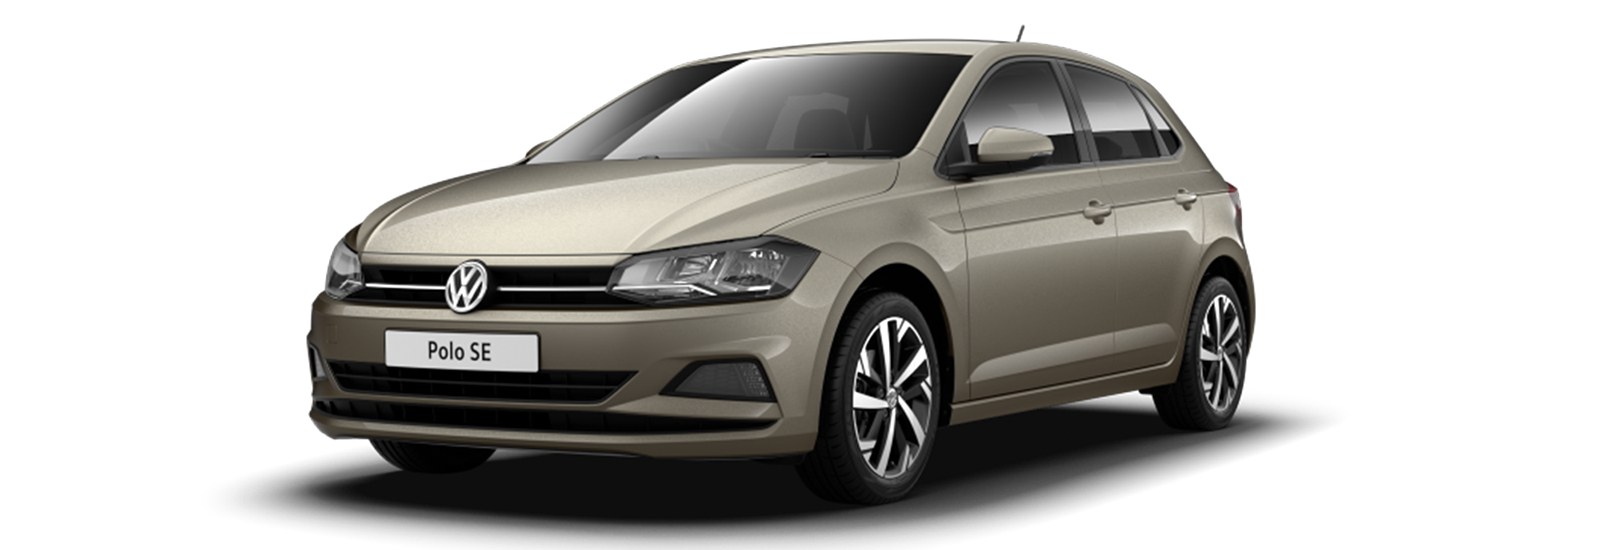 Vw Gti 0 60 >> VW Polo colours guide and prices | carwow